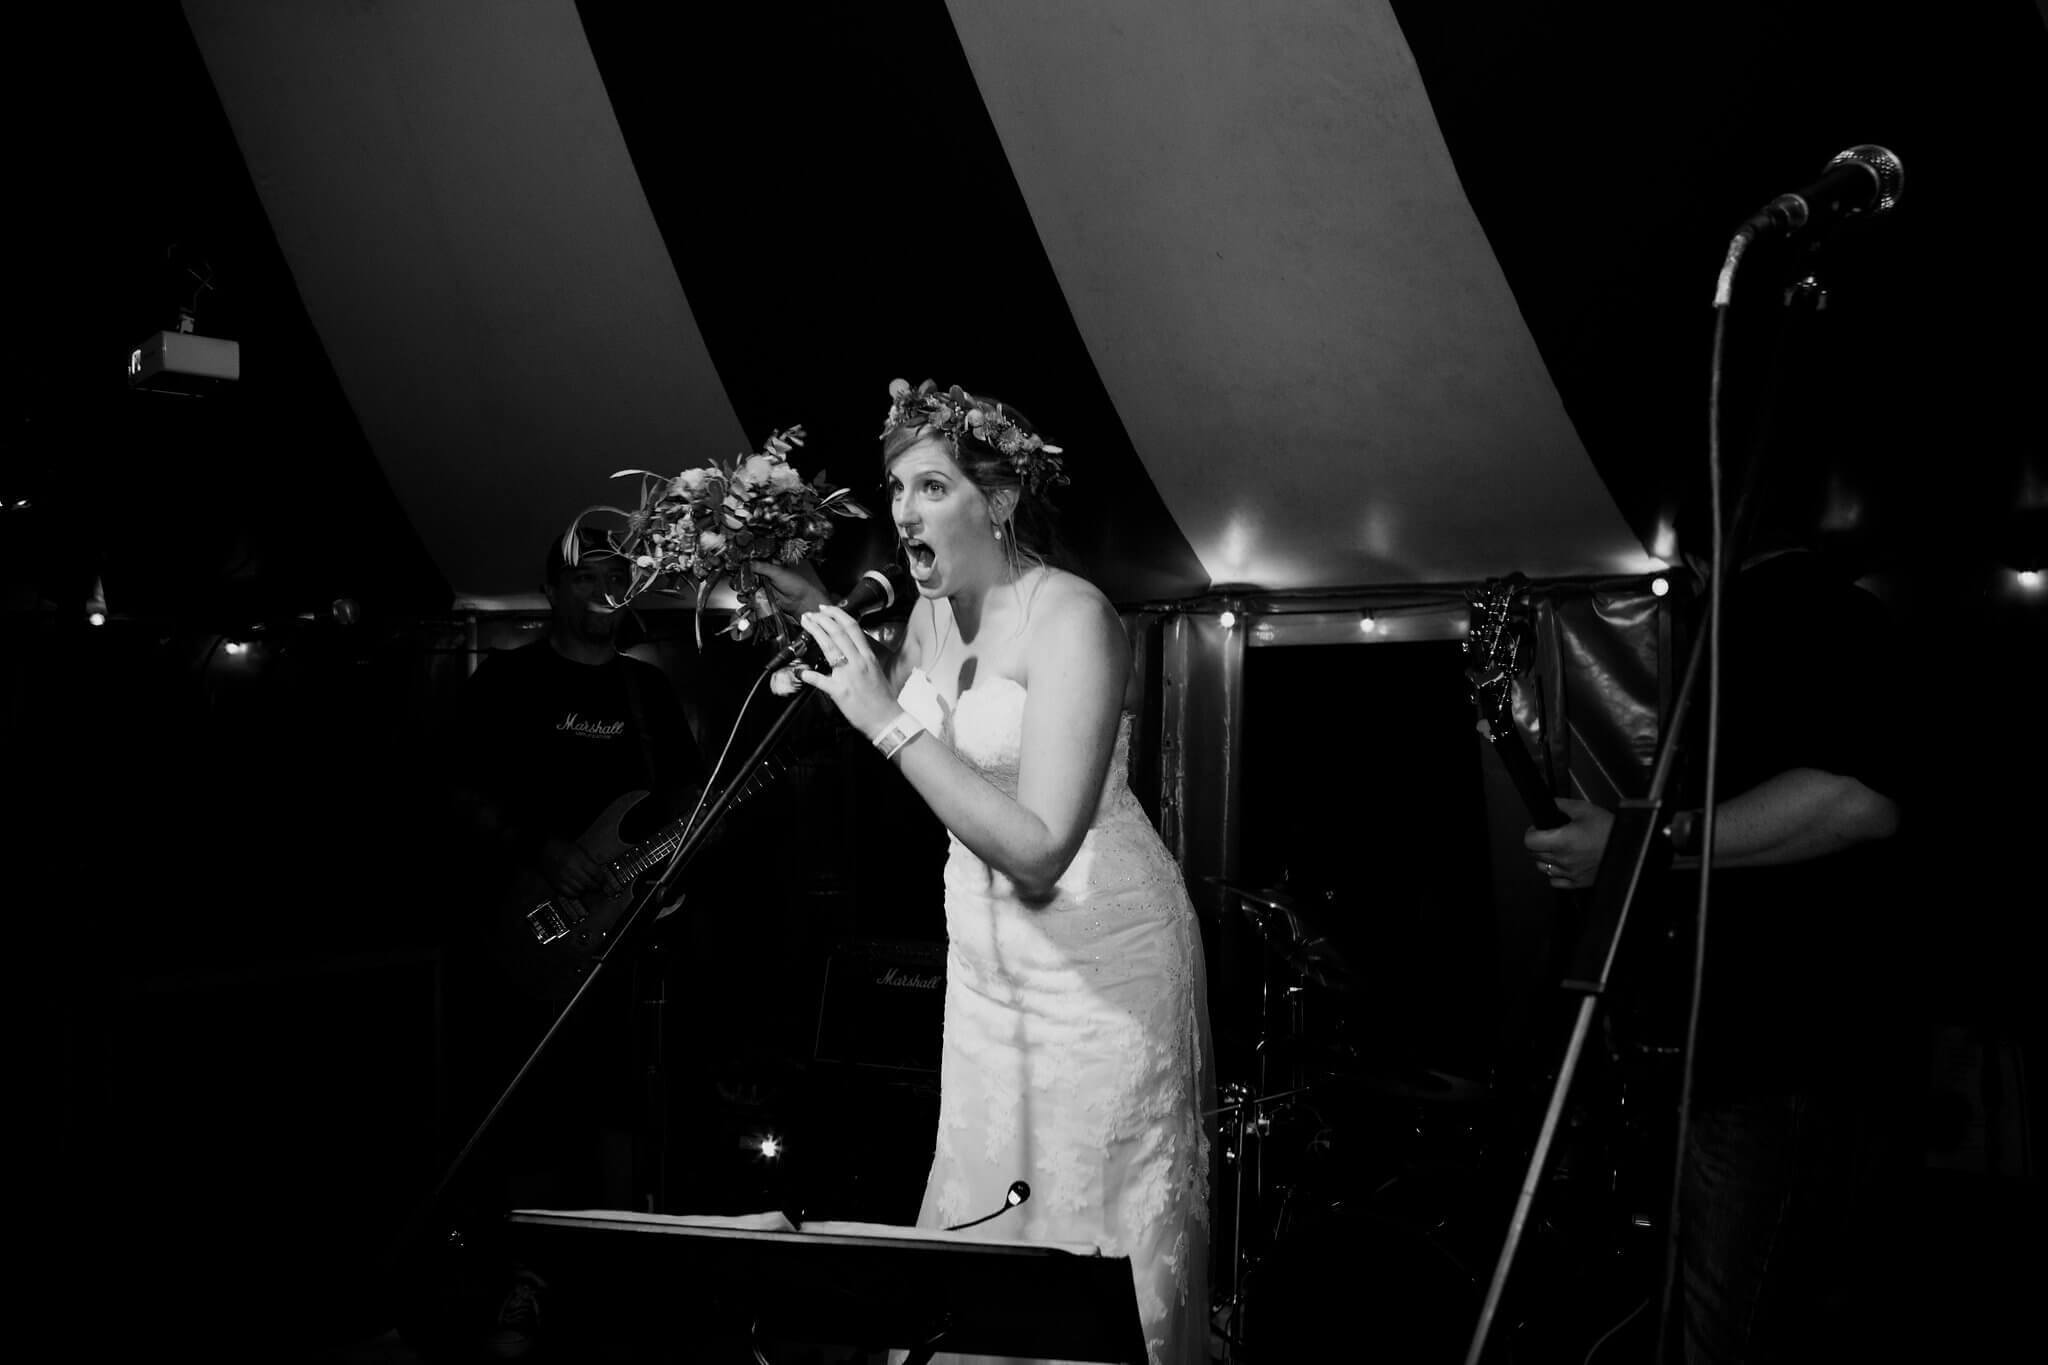 A bride takes to the microphone on stage at her wedding feast